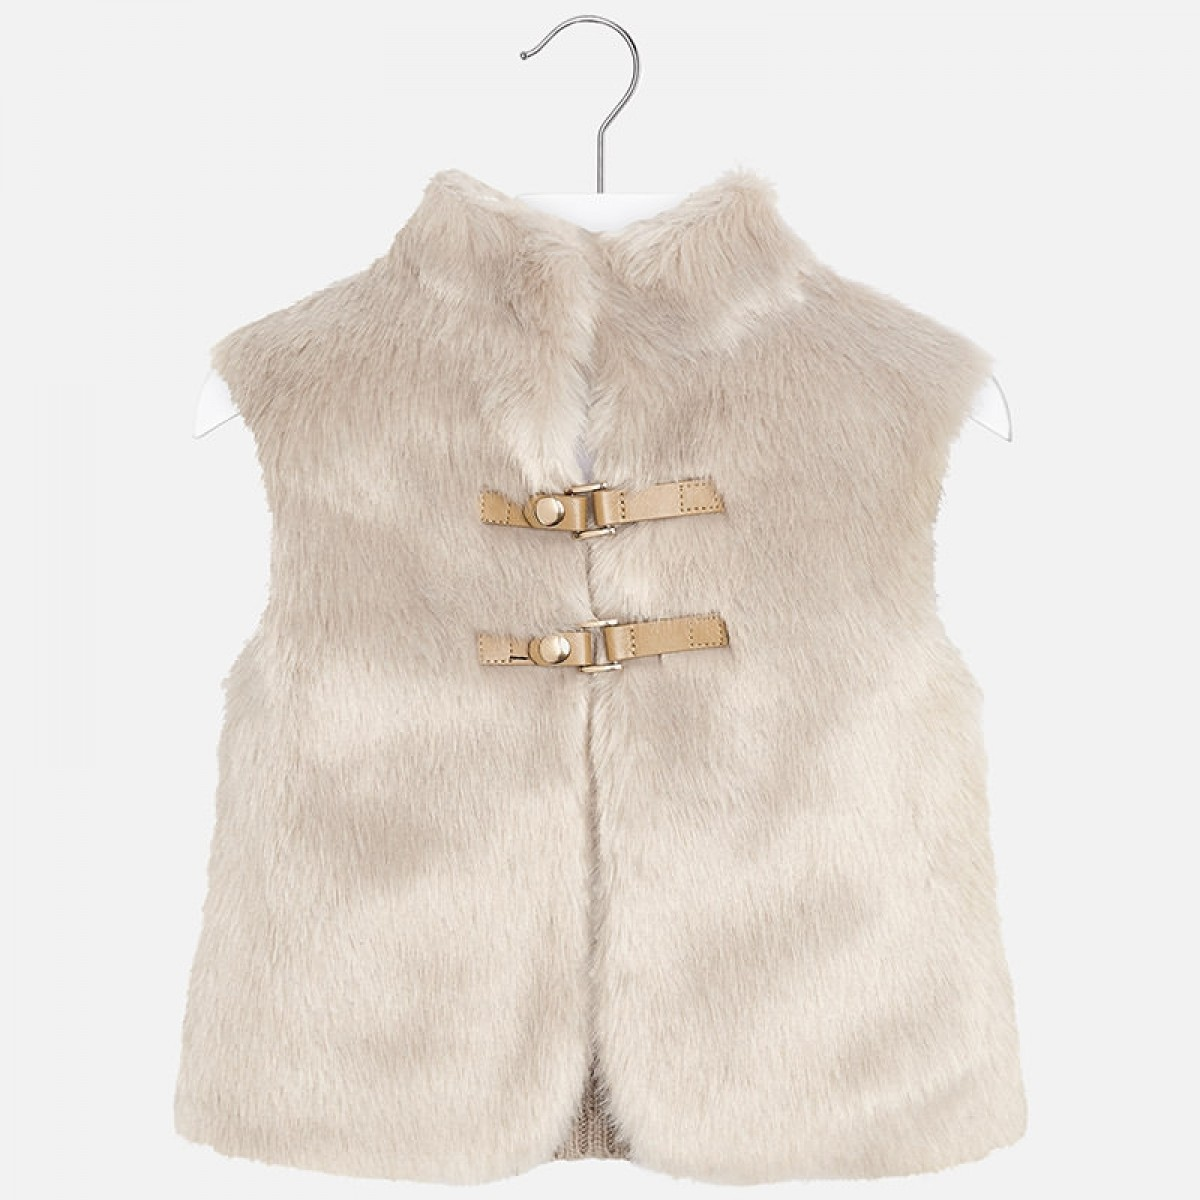 200245a5 Mayoral Girls Fur and Knitted Back Gilet - Stone (4330)